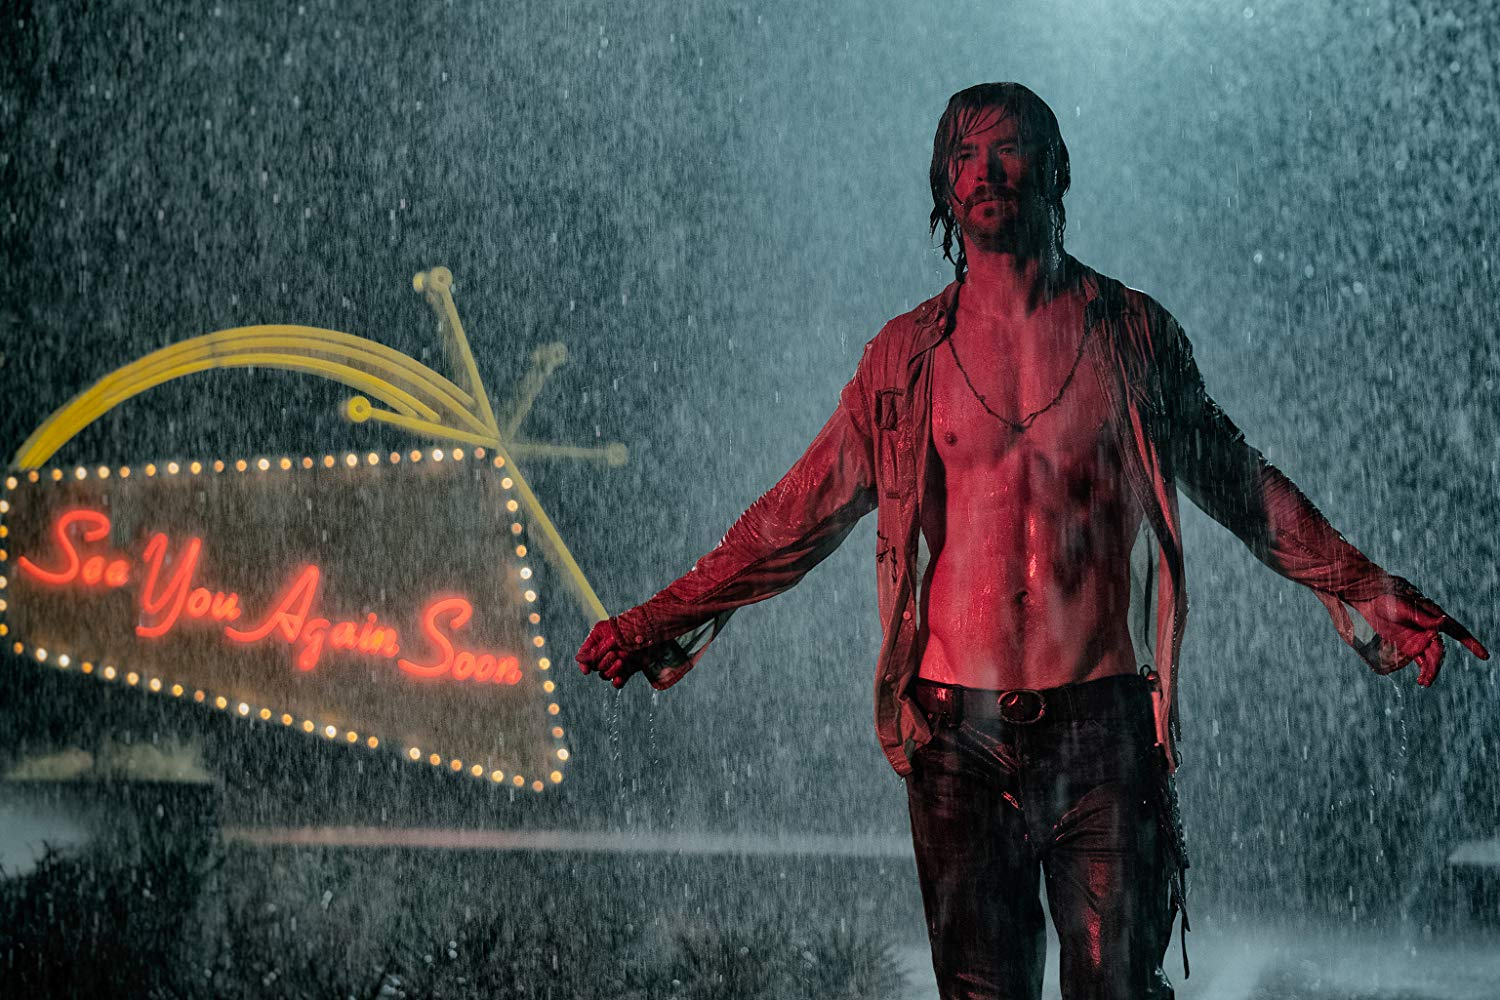 Billy standing in the rain with his shirt open